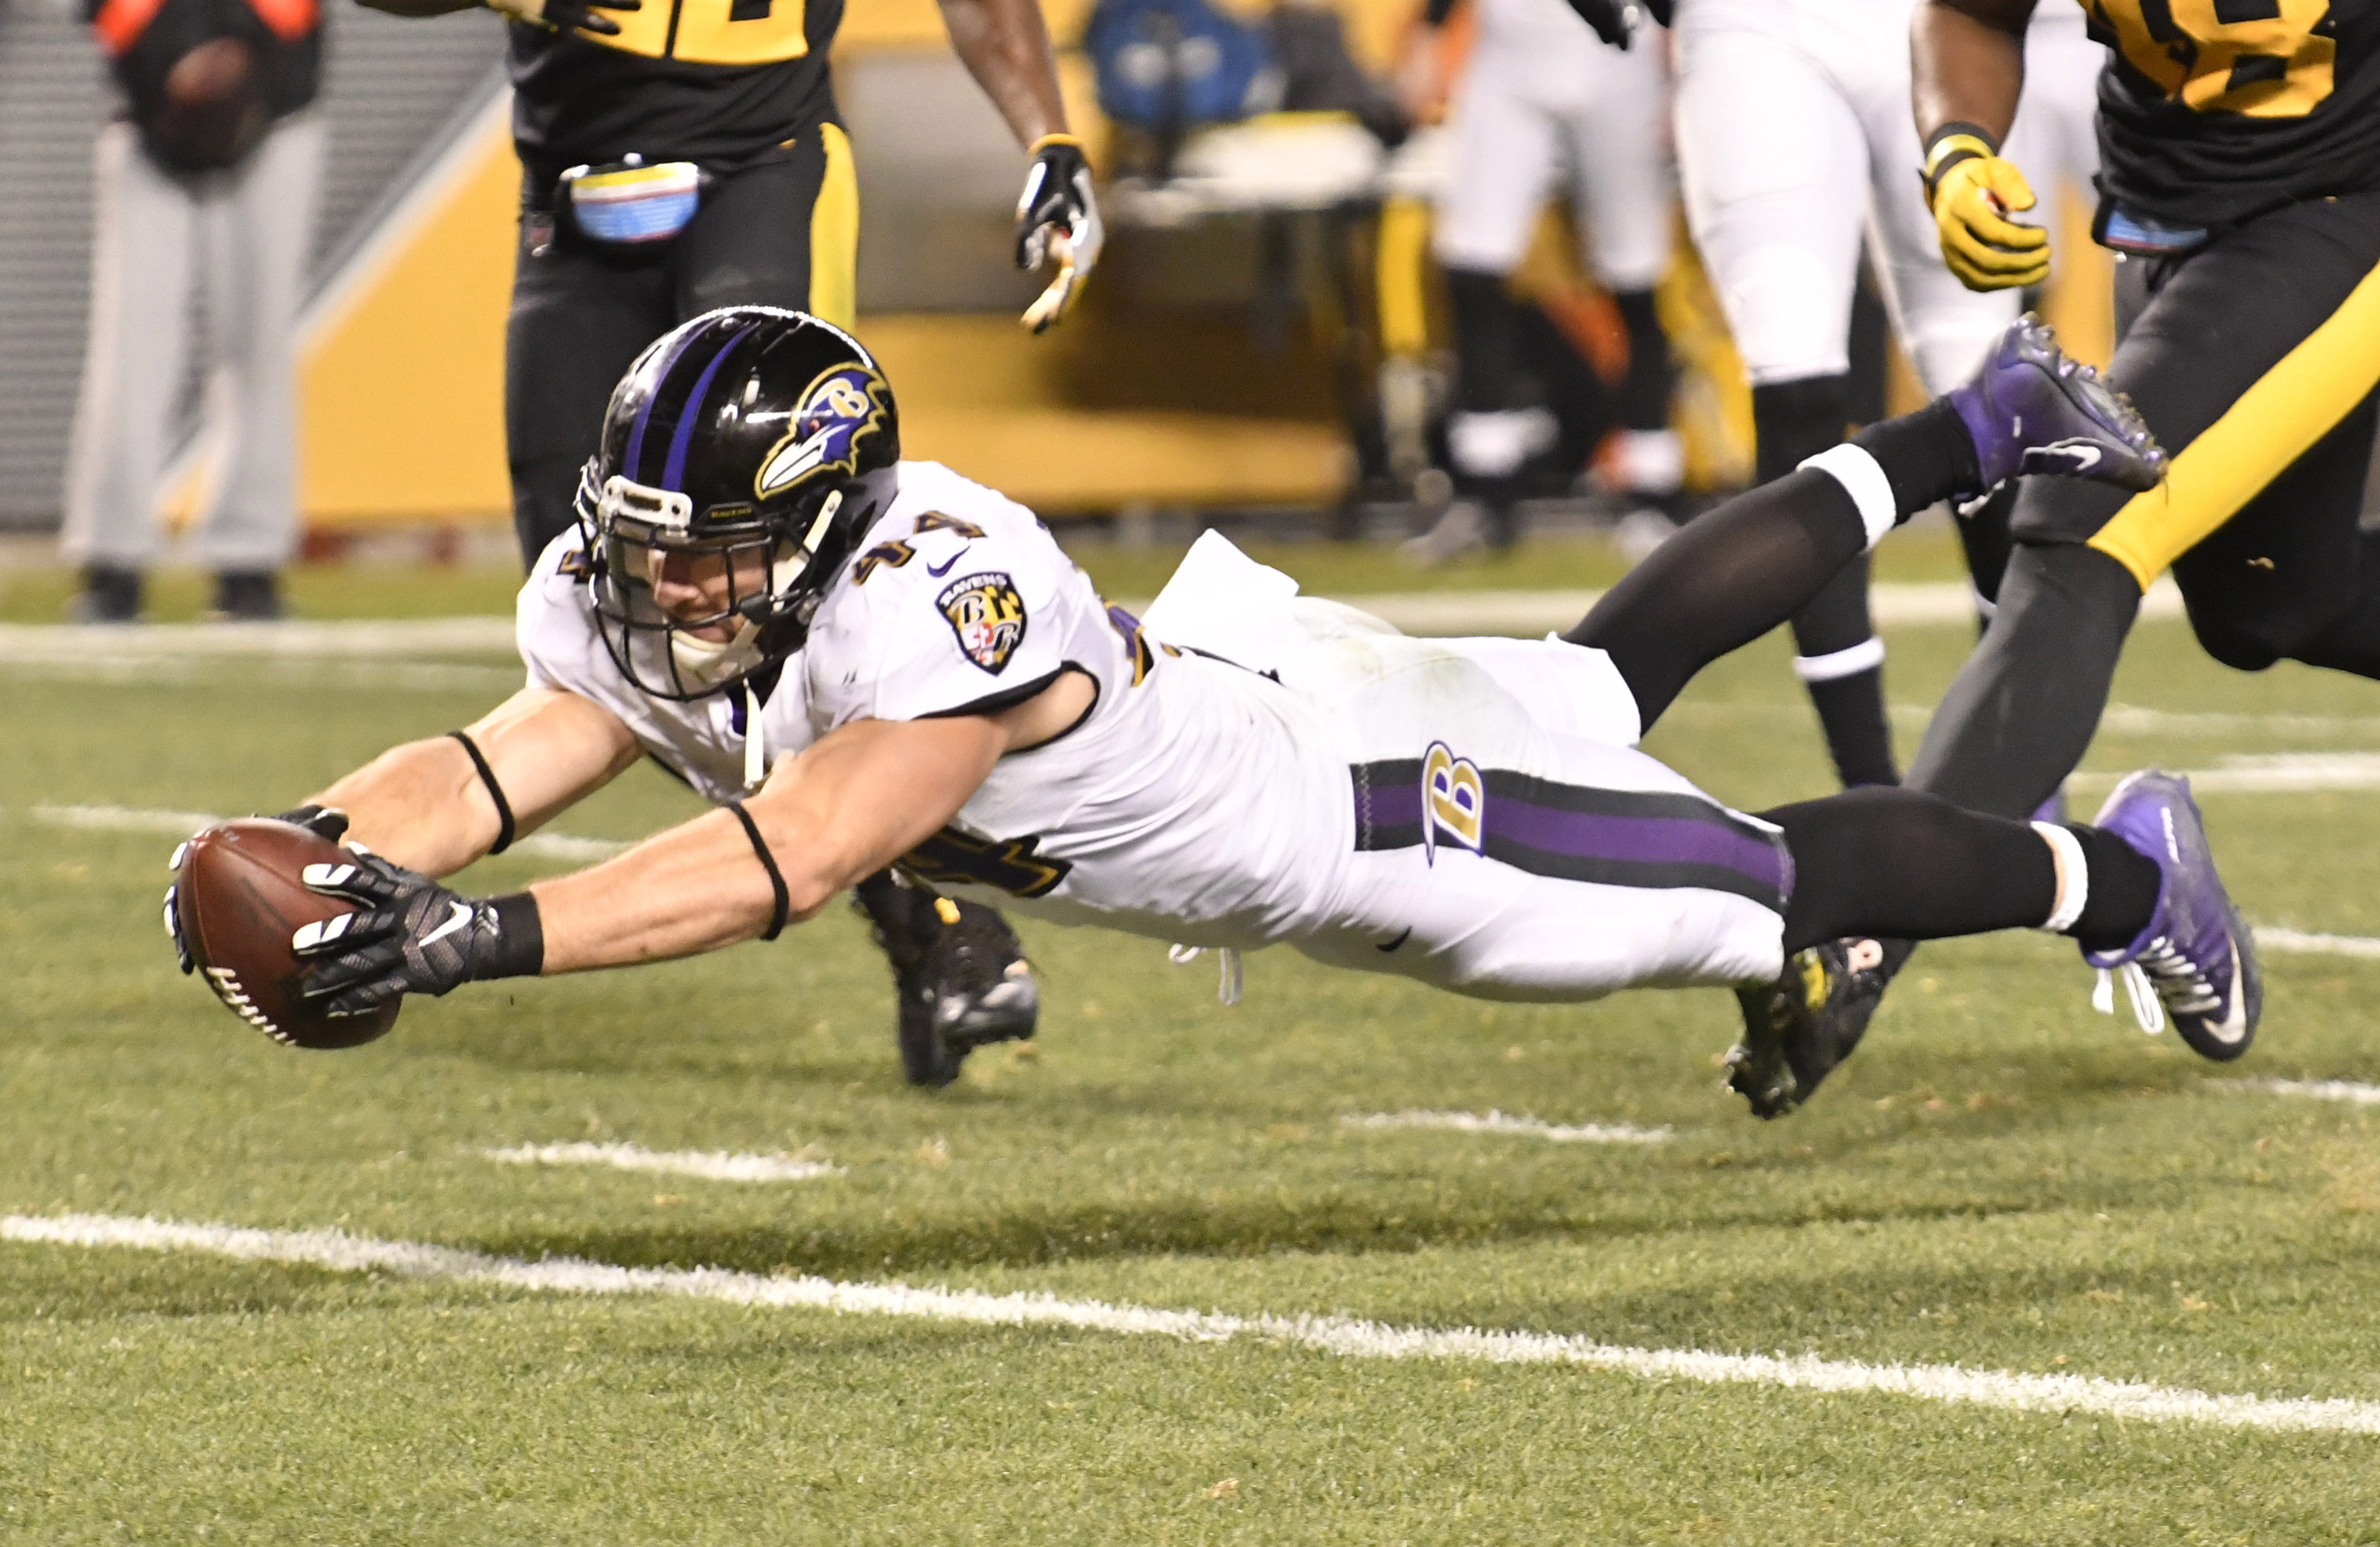 9768714-nfl-baltimore-ravens-at-pittsburgh-steelers